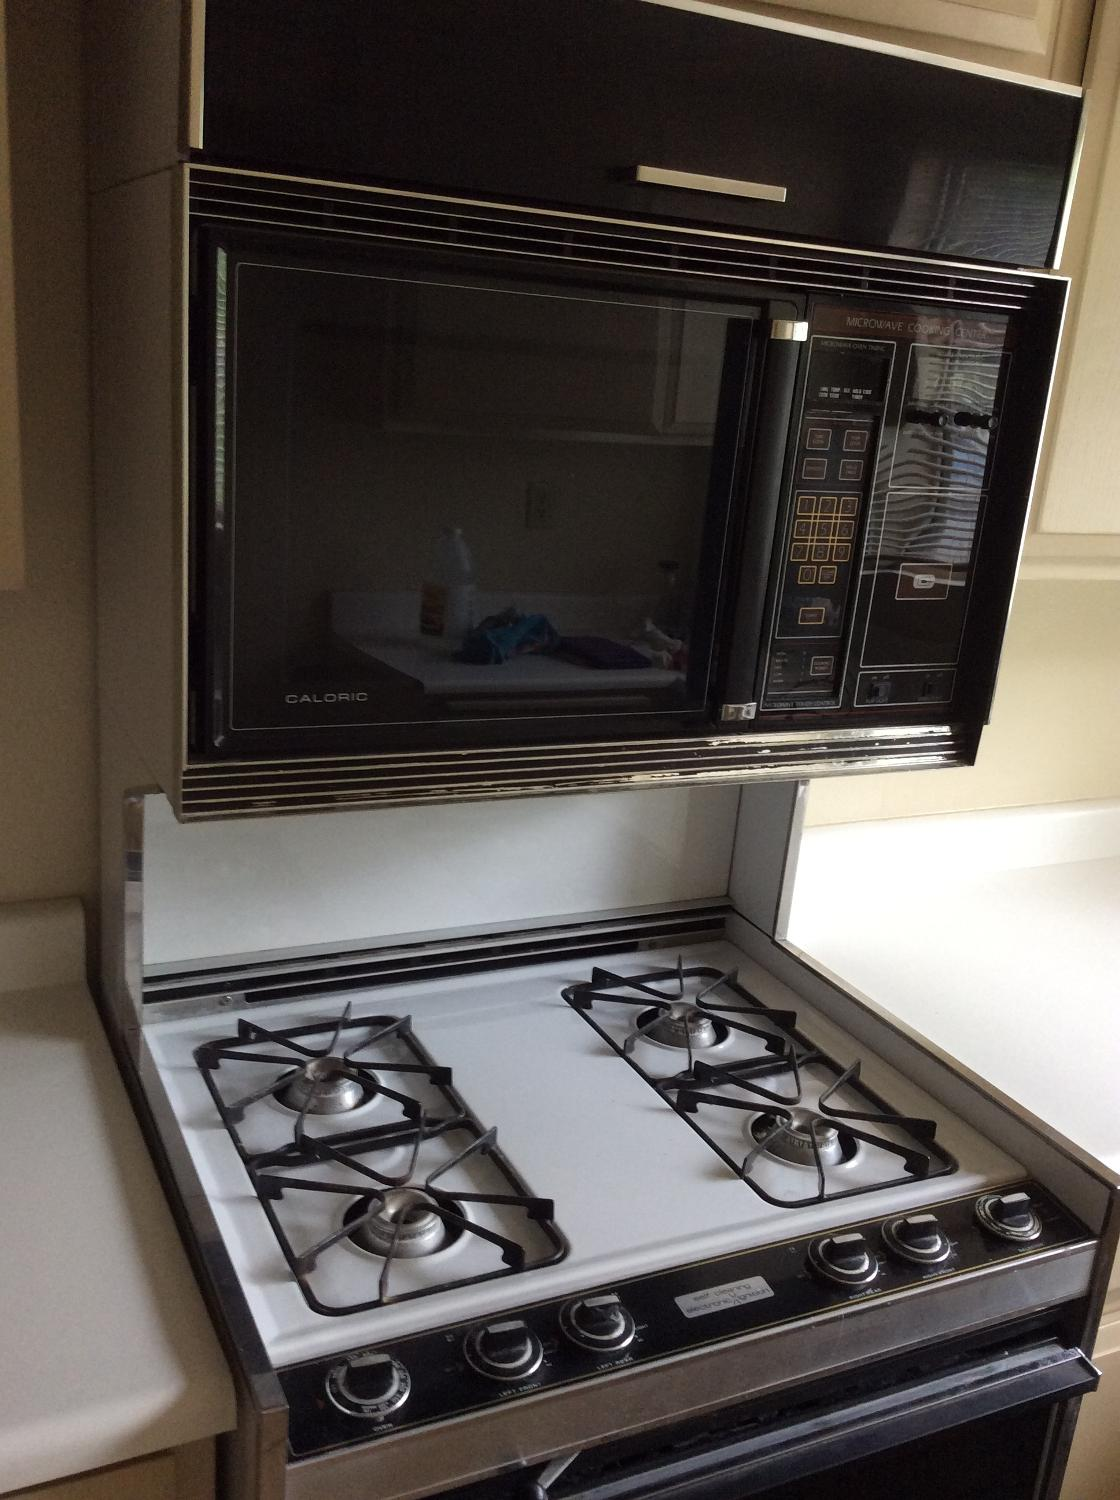 Best Caloric Gas Stove Microwave Unit For Sale In Palm